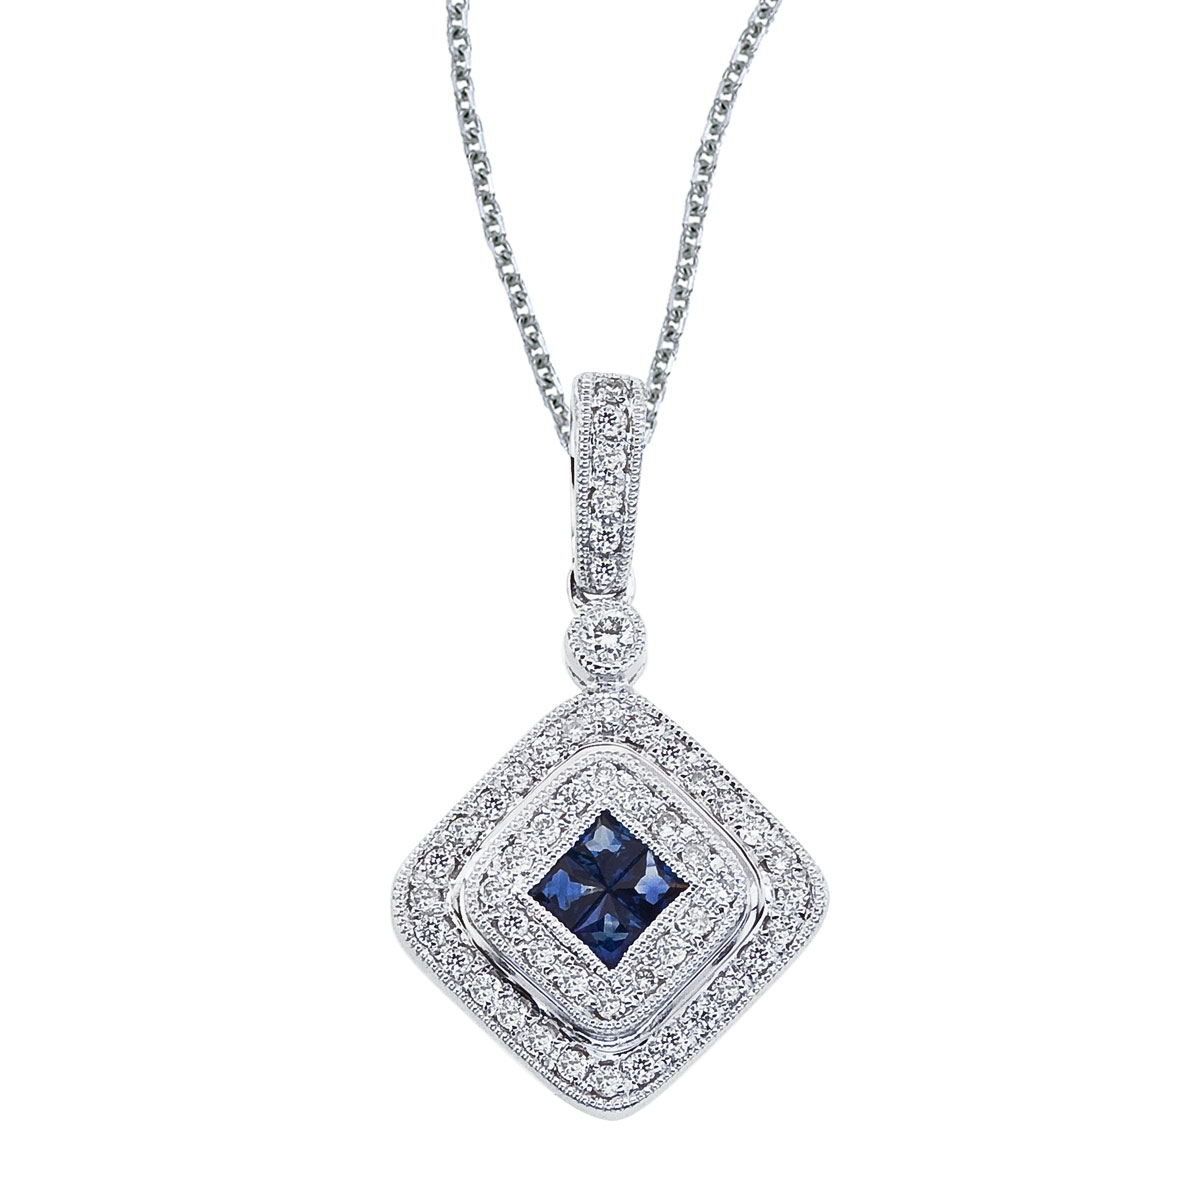 This fashionable pendant features four 1.6 mm sapphires and .17 total carats of sparkling diamonds.